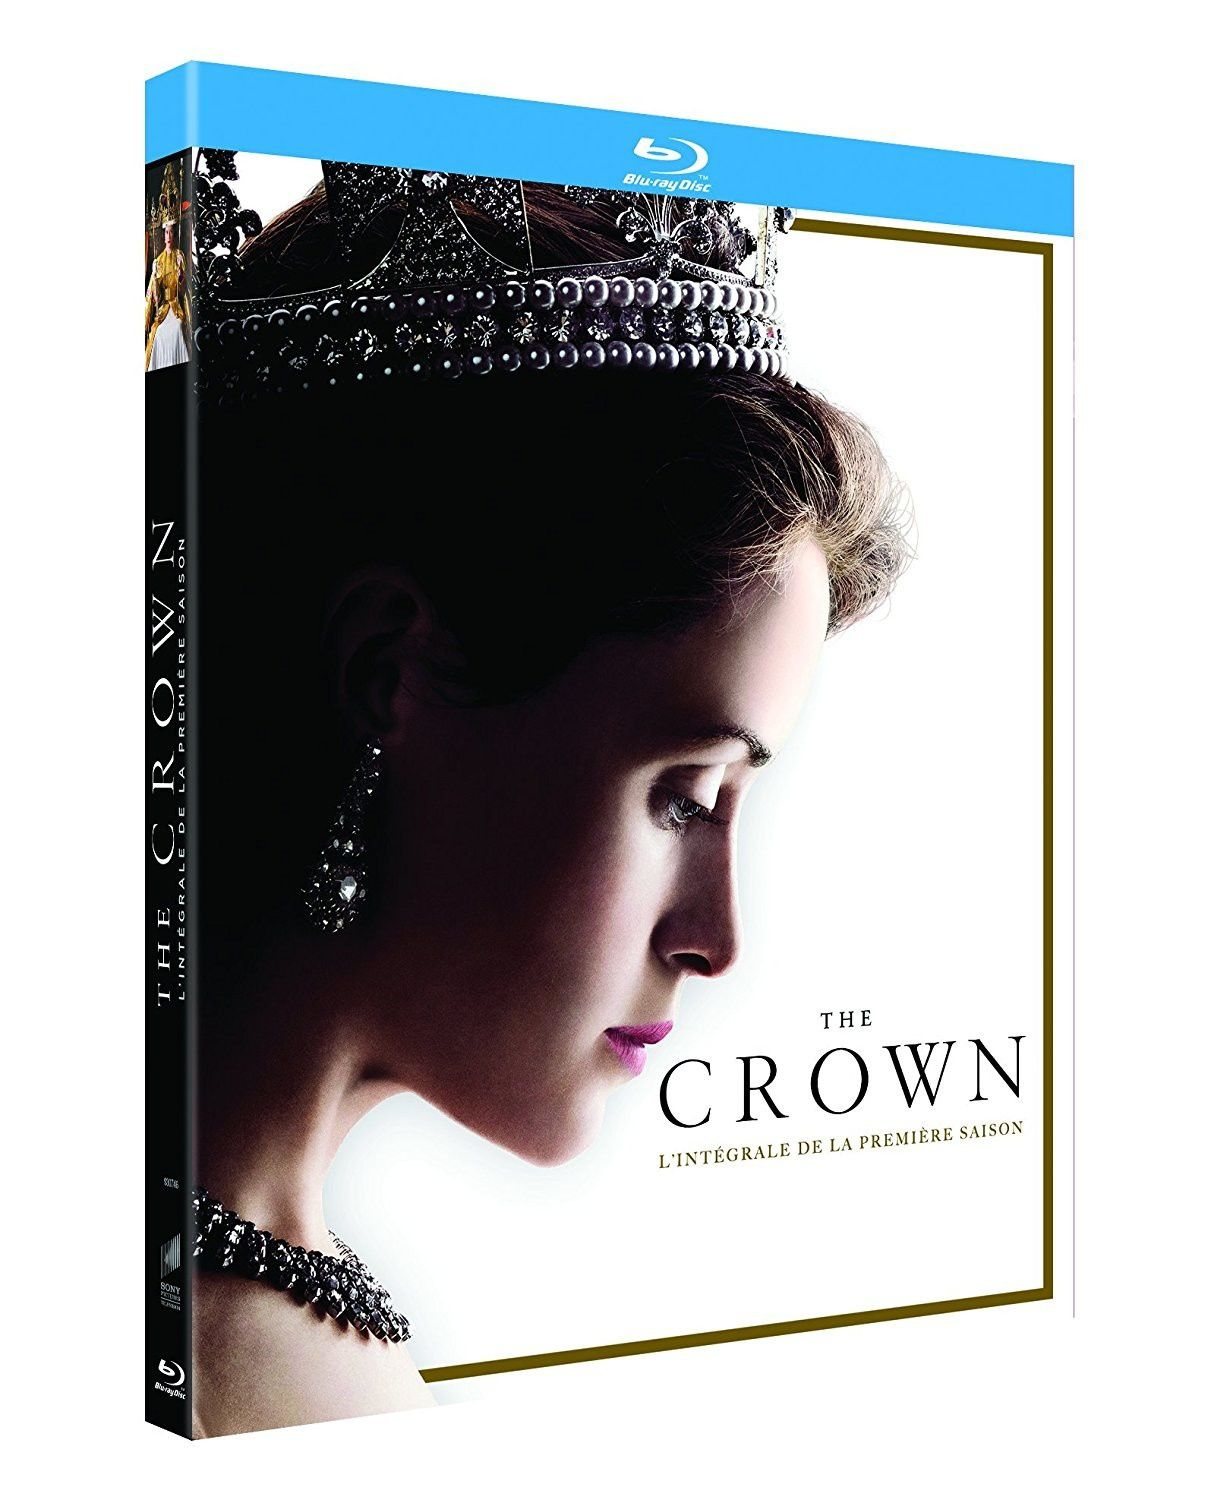 [REVUE SERIE TV BLU-RAY] THE CROWN SAISON 1